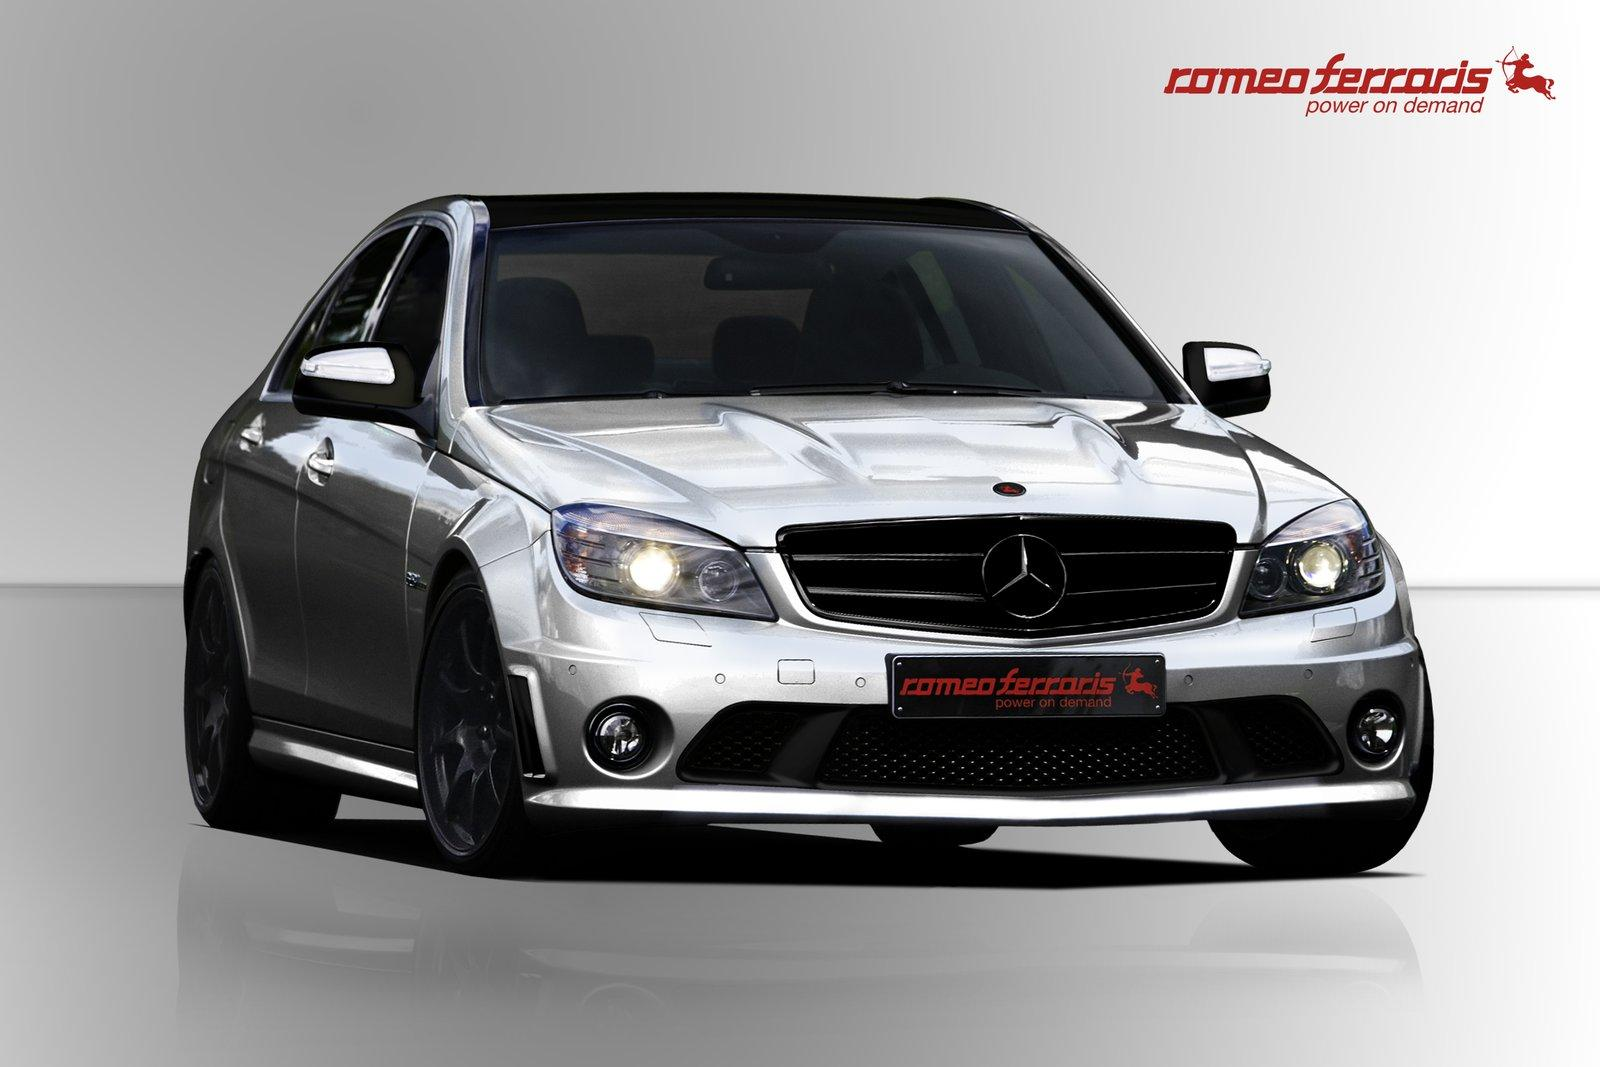 2010 mercedes benz c63 amg by romeo ferraris new car used car reviews picture. Black Bedroom Furniture Sets. Home Design Ideas